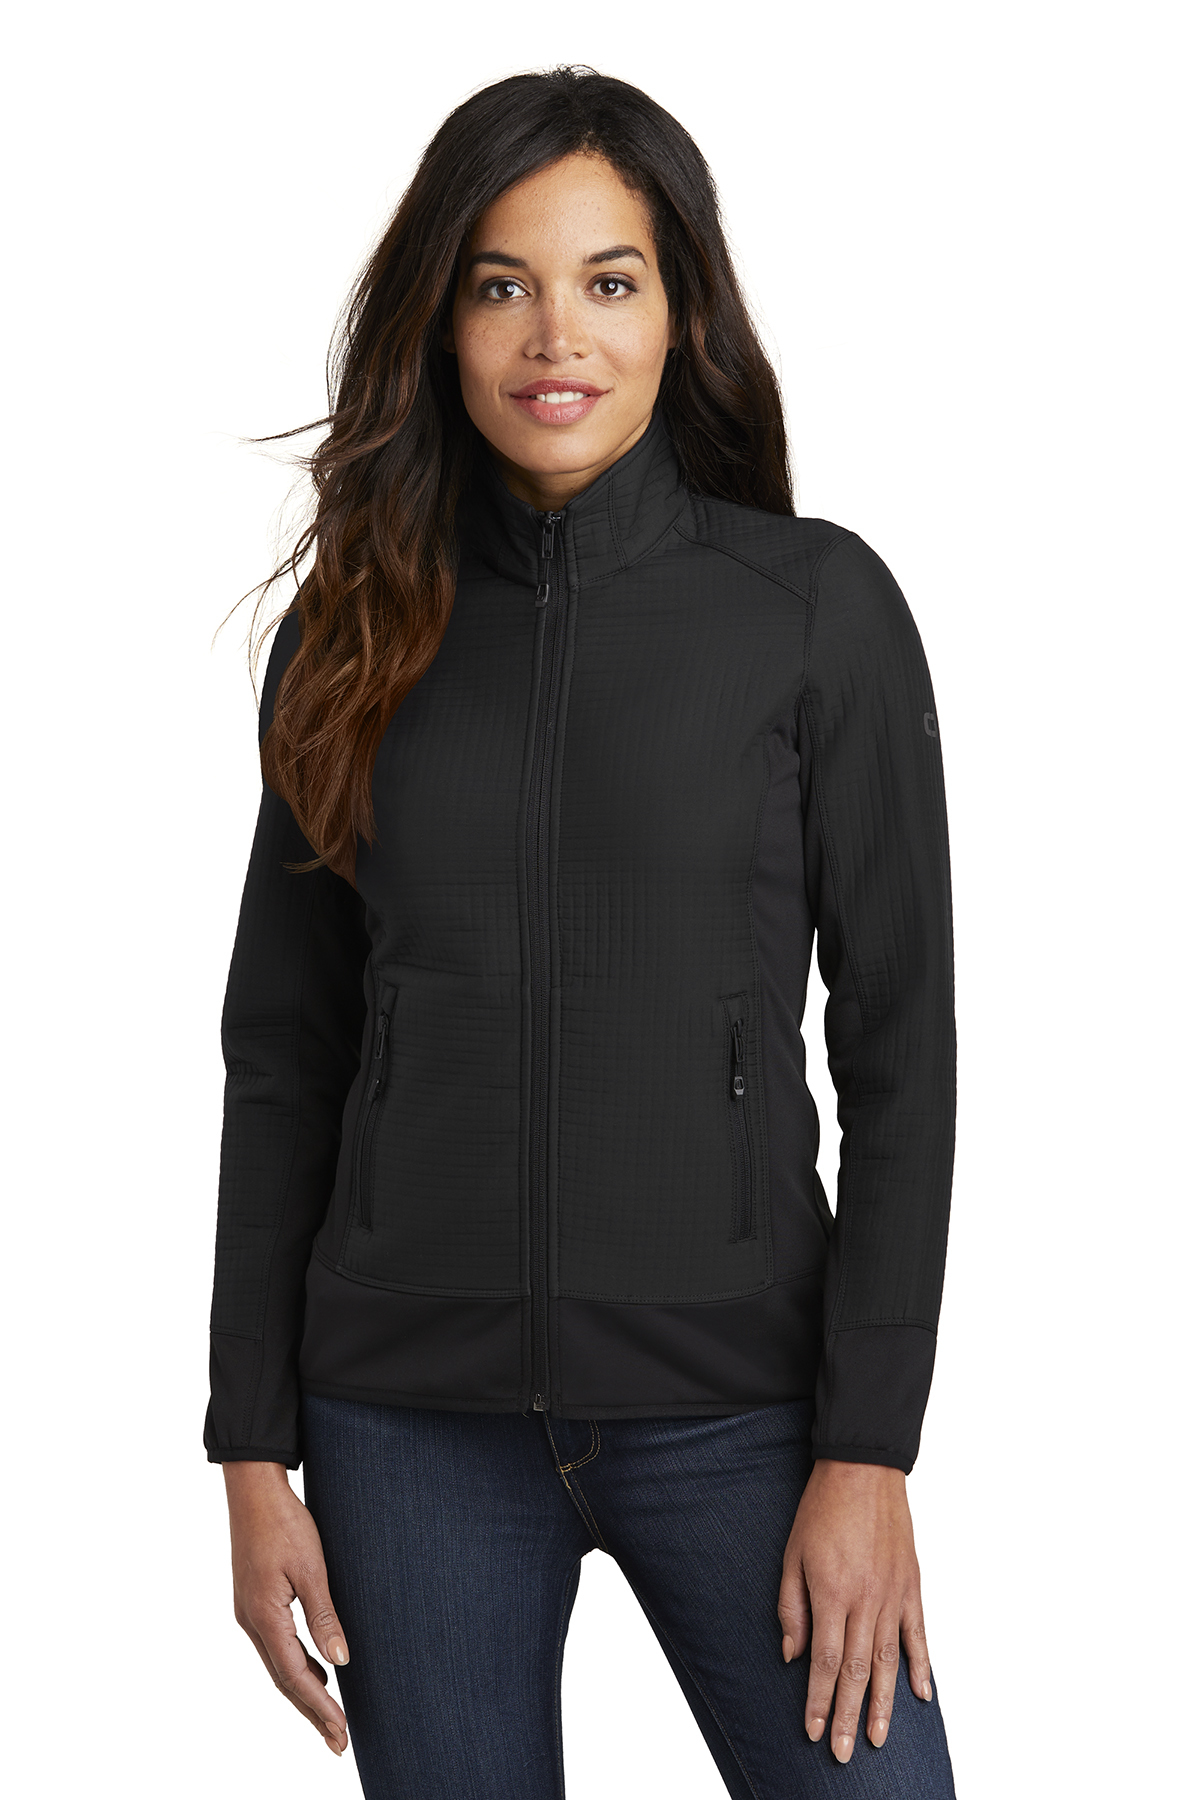 OGIO LOG726 - Ladies Trax Jacket